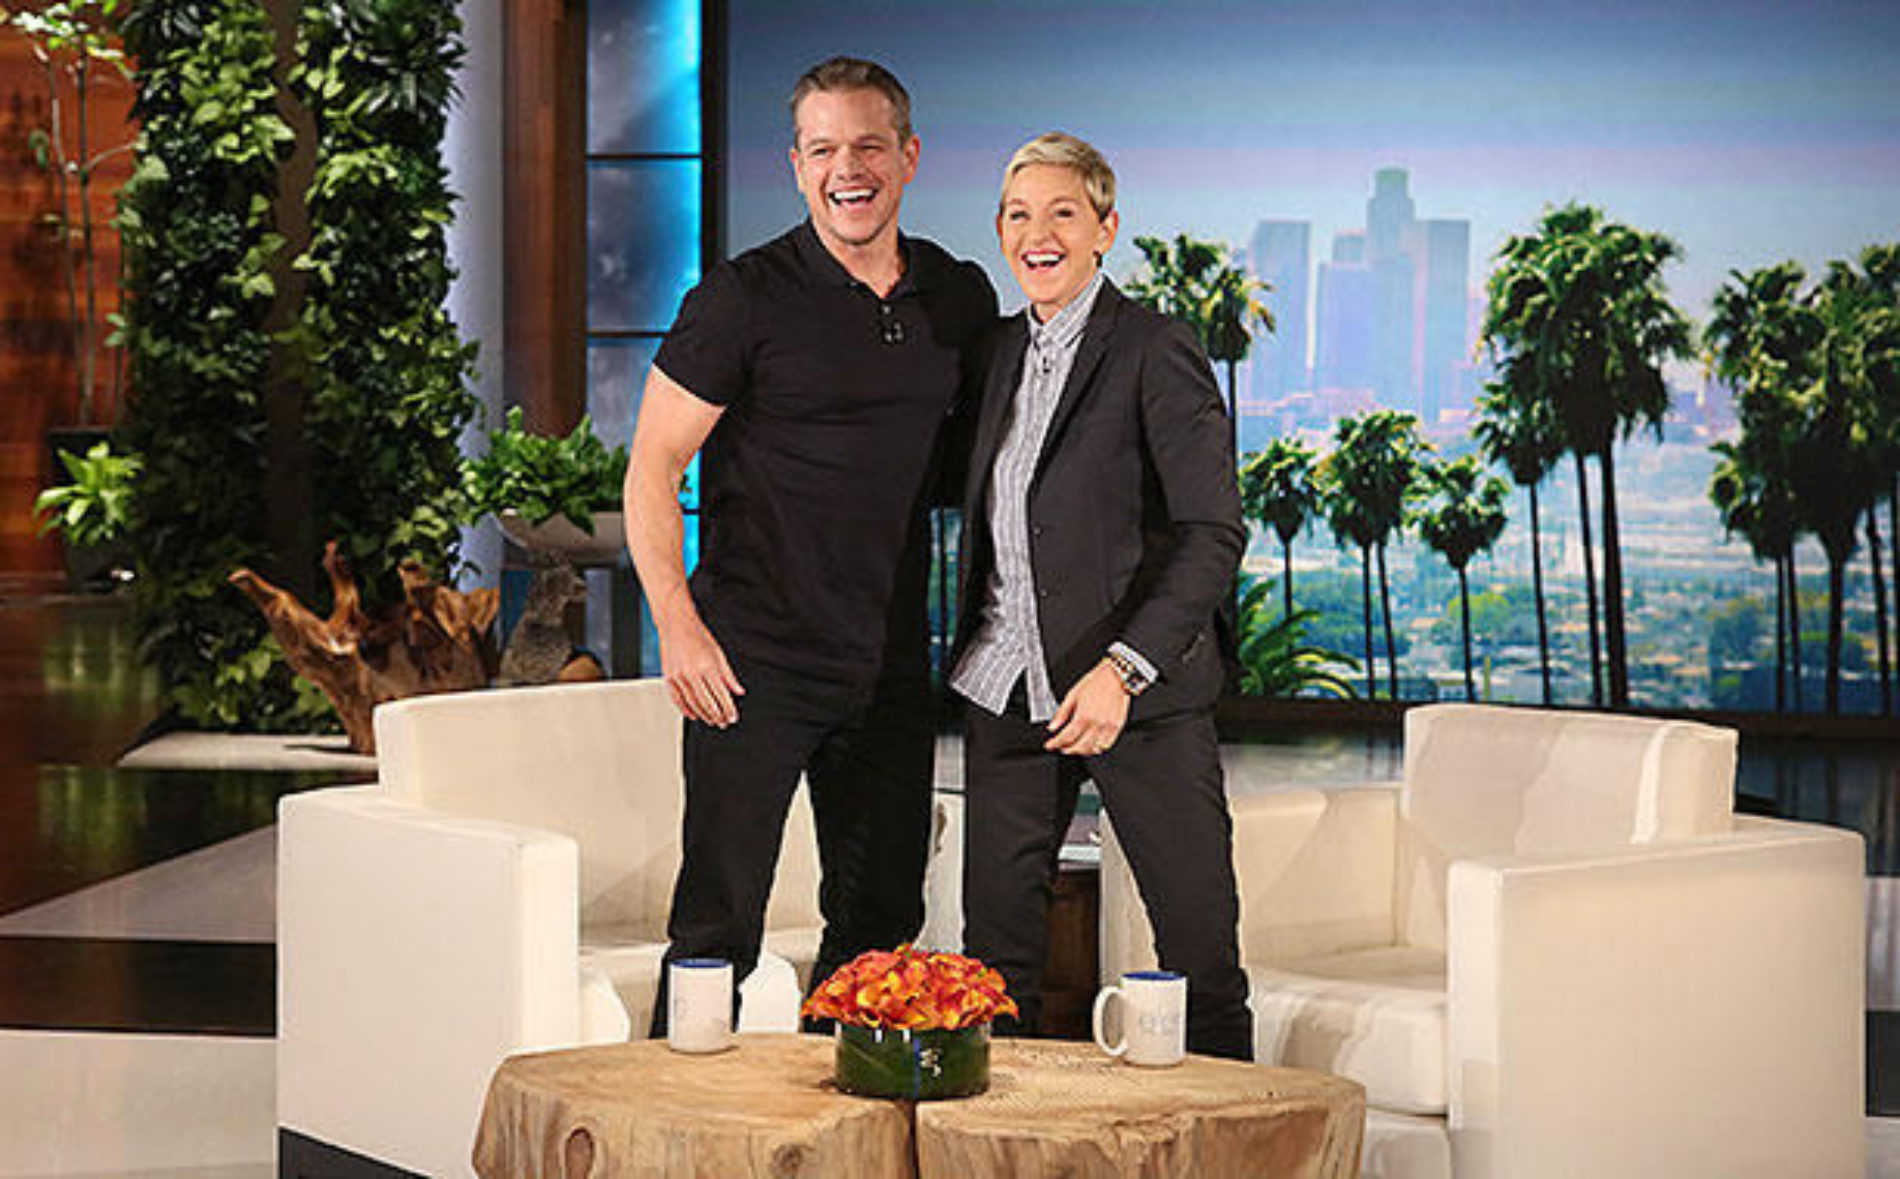 Matt Damon Clarifies His Comments, Tells Ellen He Was Quoted Out Of Context